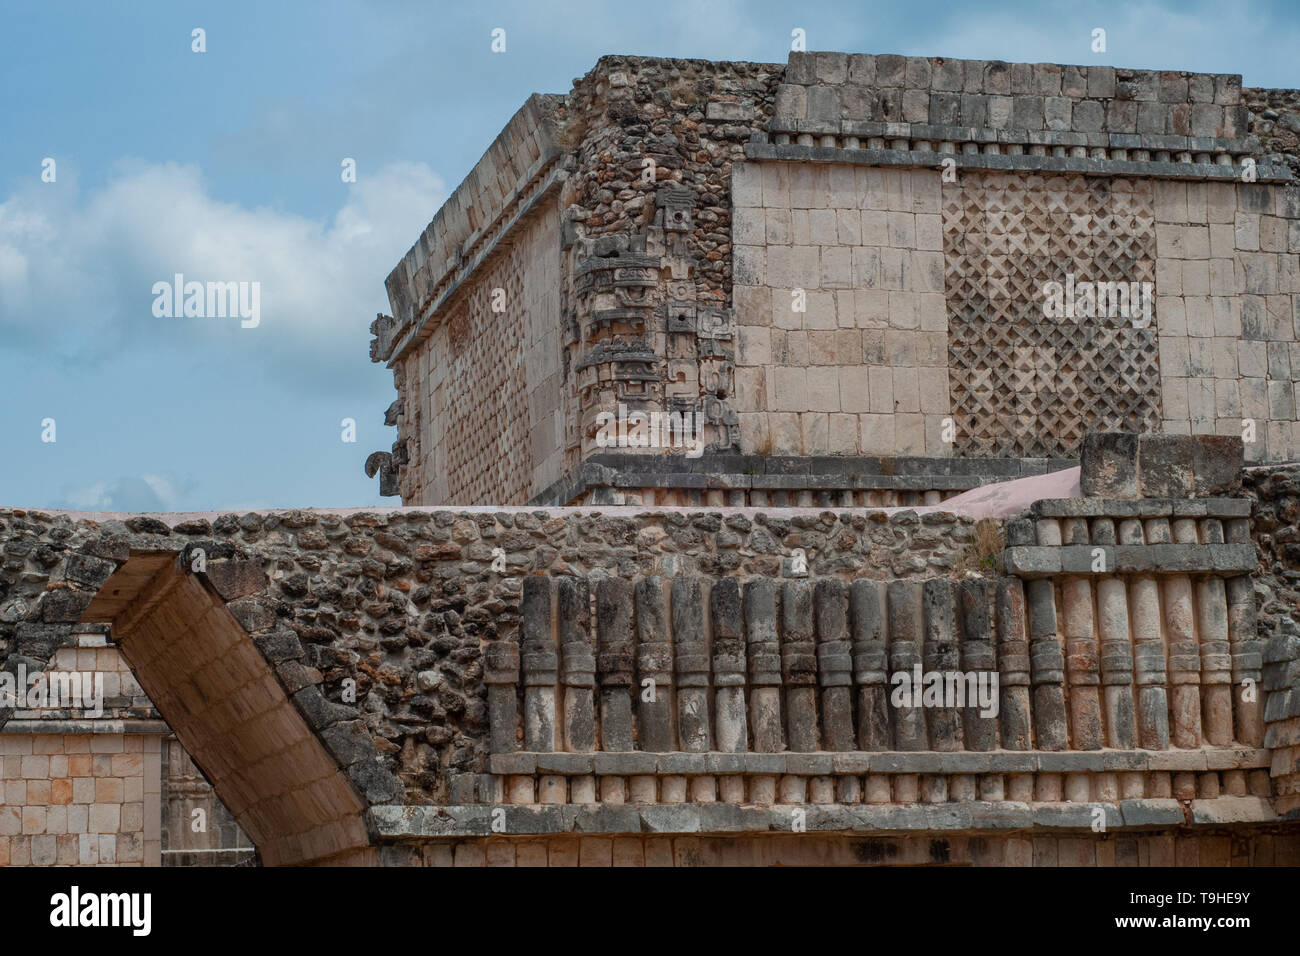 Details of an ancient Mayan building, in the archaeological area of Ek Balam, on the Yucatan peninsula - Stock Image